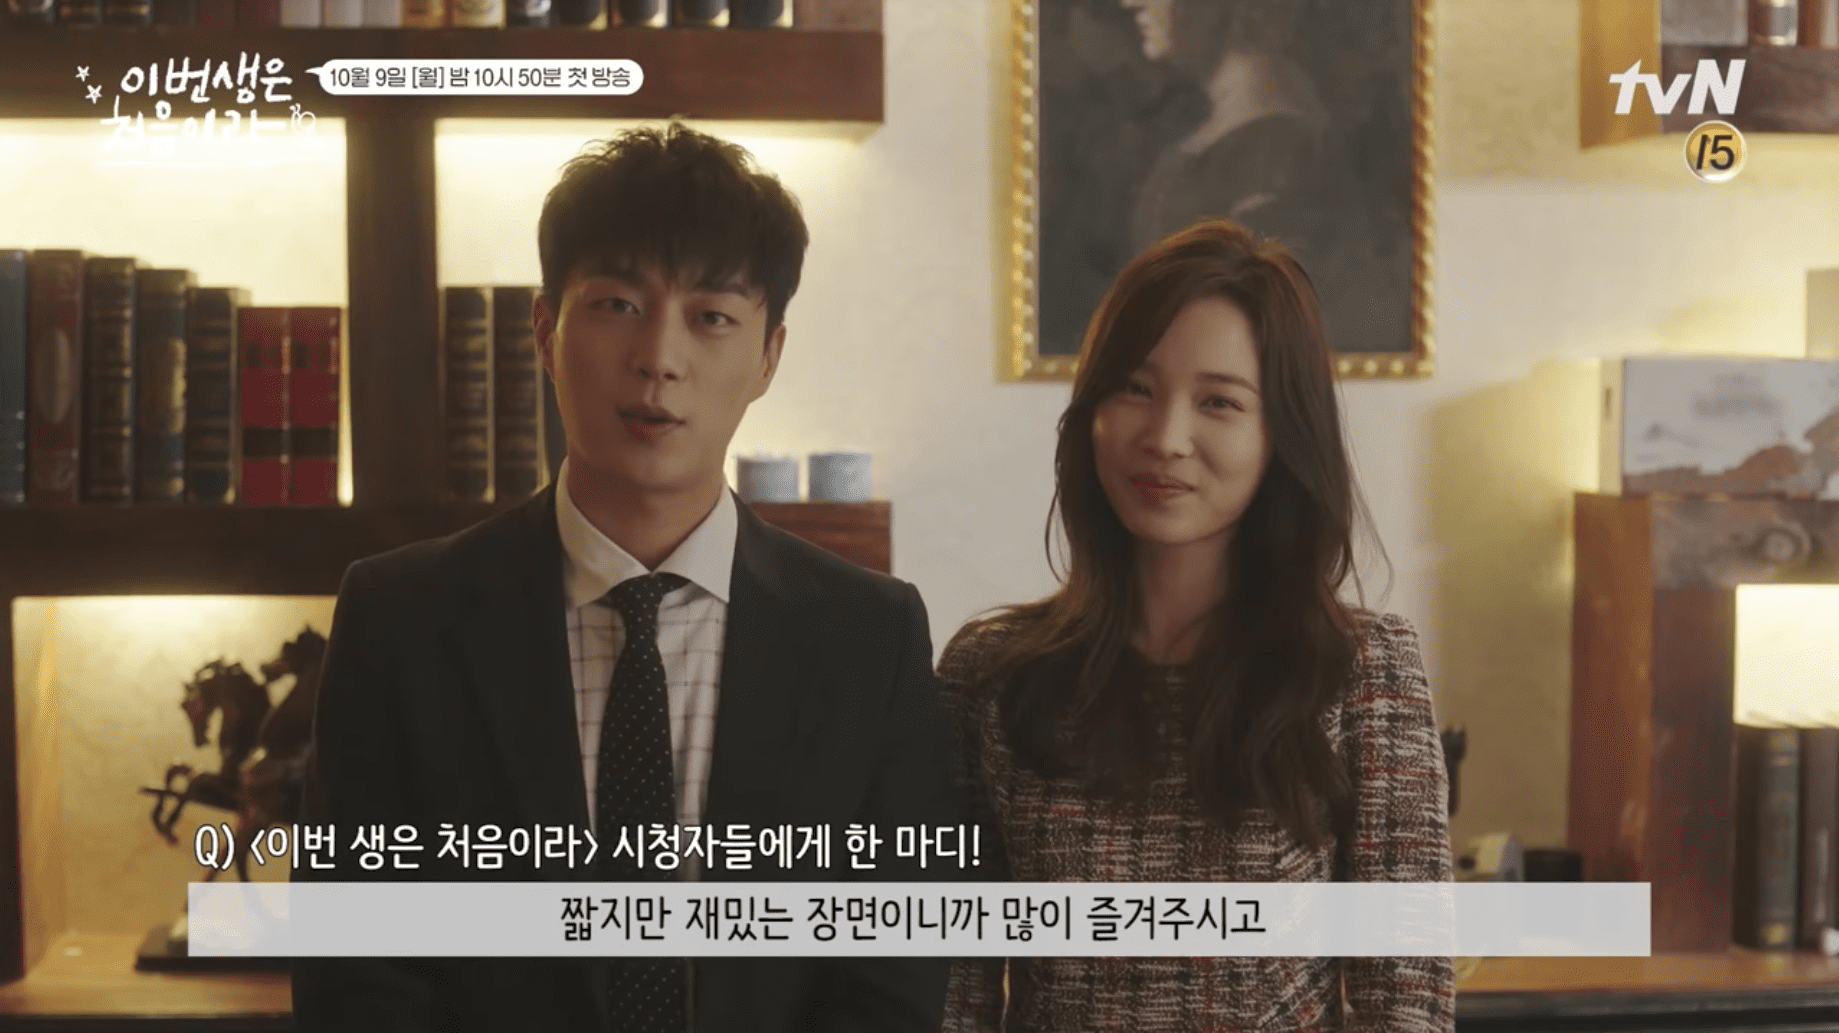 Watch: Highlights Yoon Doo Joon And Yoon So Hee Are Cute Behind-The-Scenes Of Their Cameo On Because This Is My First Life